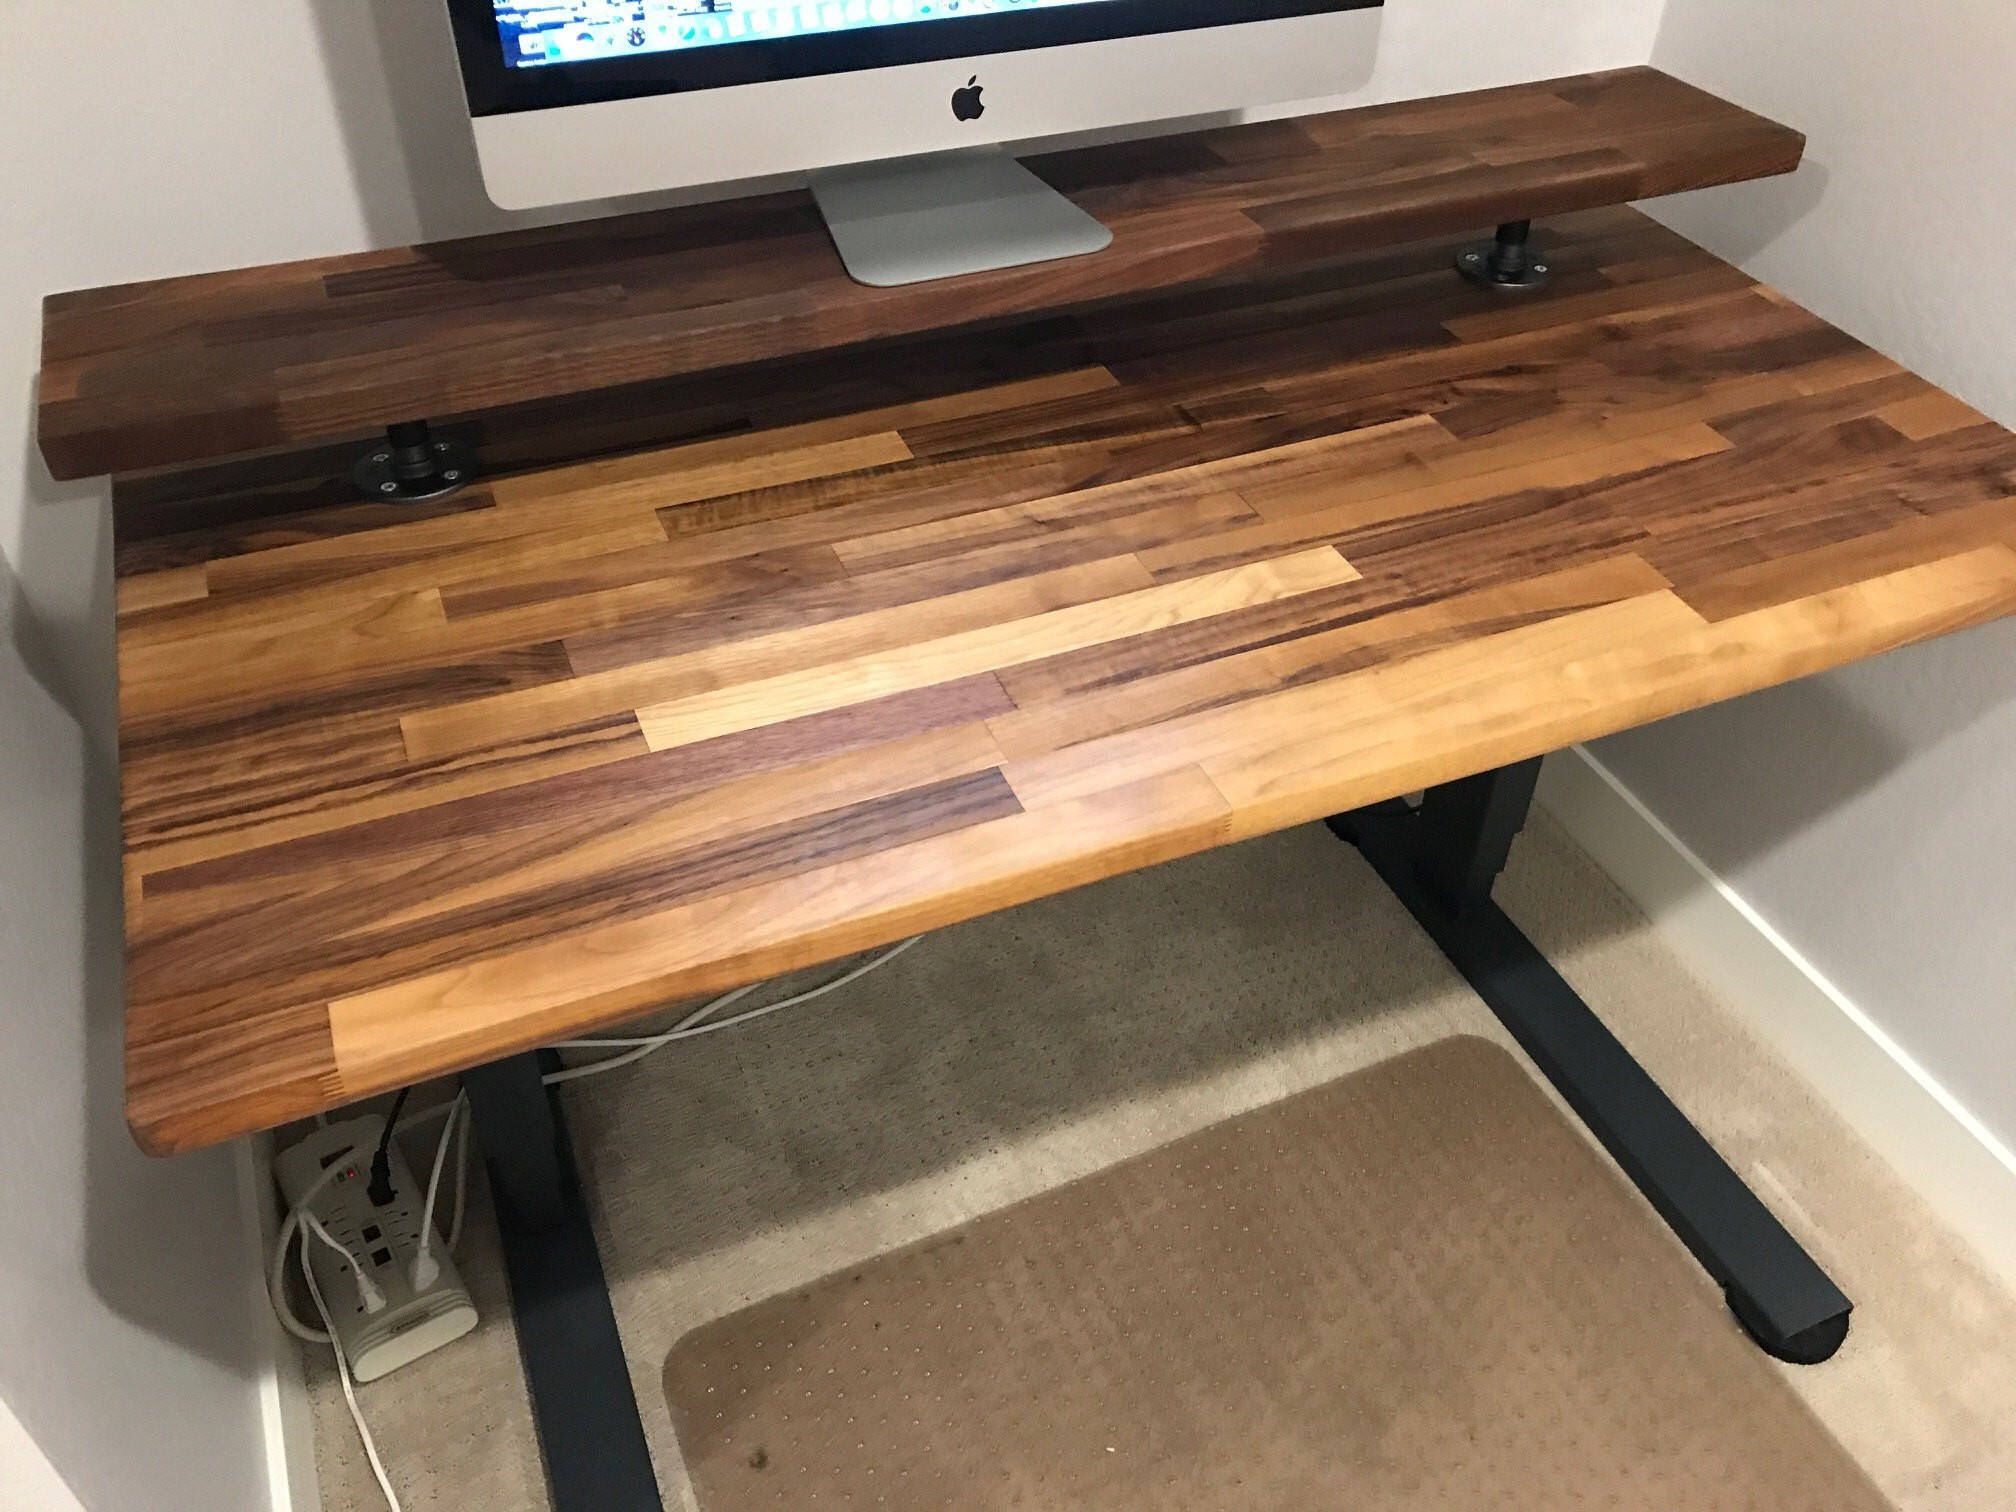 Walnut Butcher Block Desktop 25 X 48 To 72 Inch Long Character